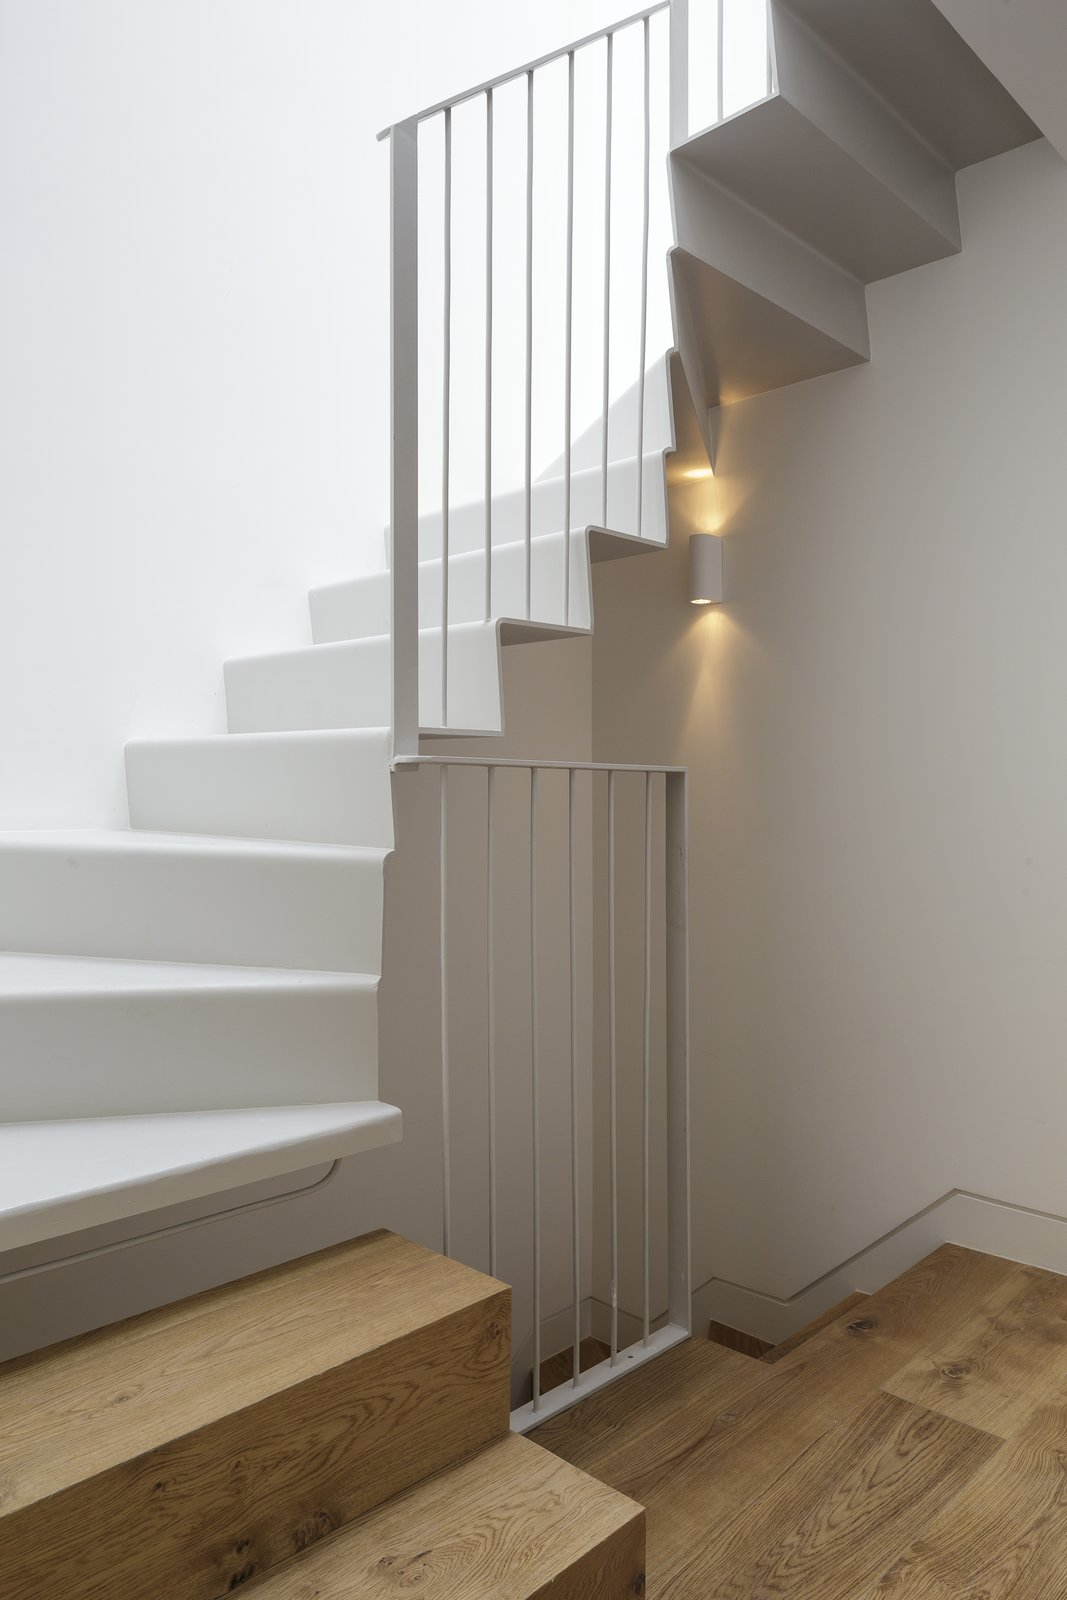 Staircase, Metal Railing, and Metal Tread  Photo 4 of 4 in Room No Roof by Tsuruta Architects